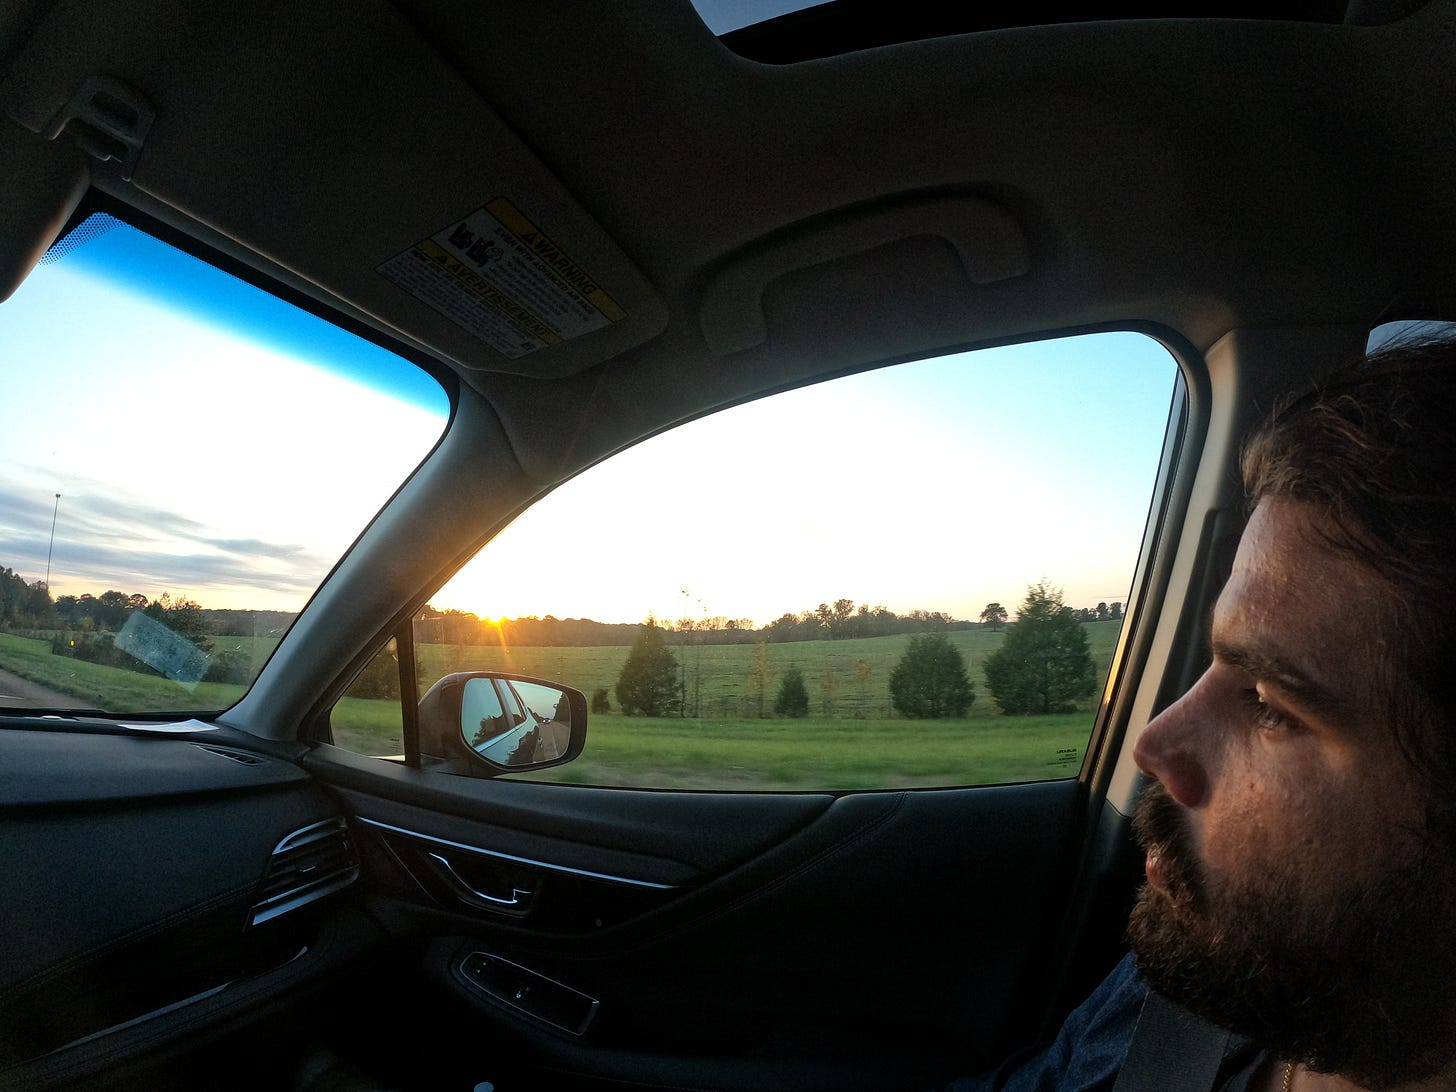 Anthony staring out the window as the sun sets over a green field in the Mississippi Delta